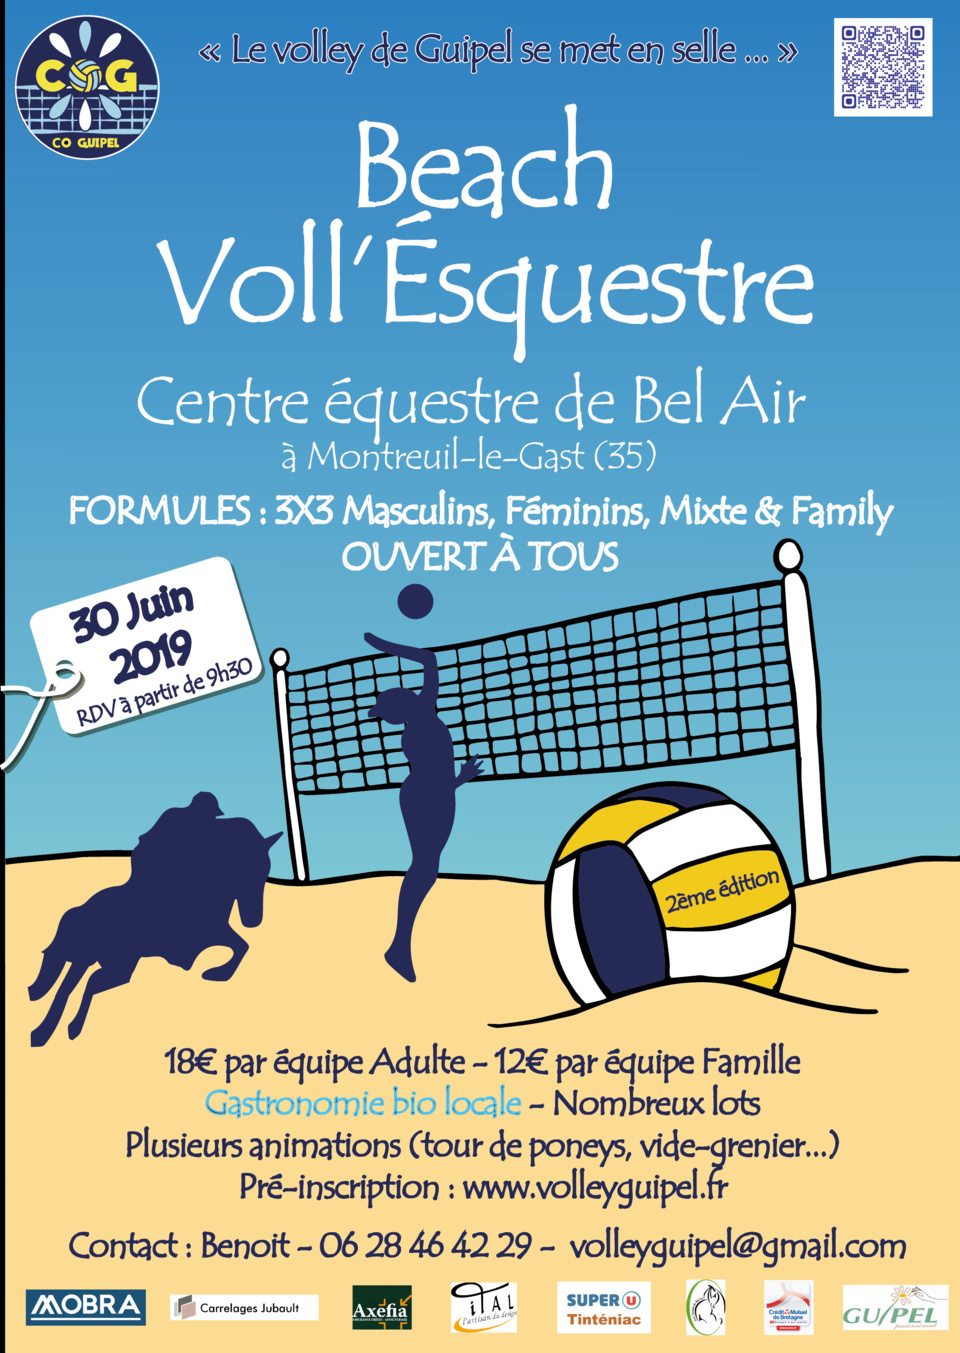 Tournoi Beach Voll'Equestre - CO Guipel